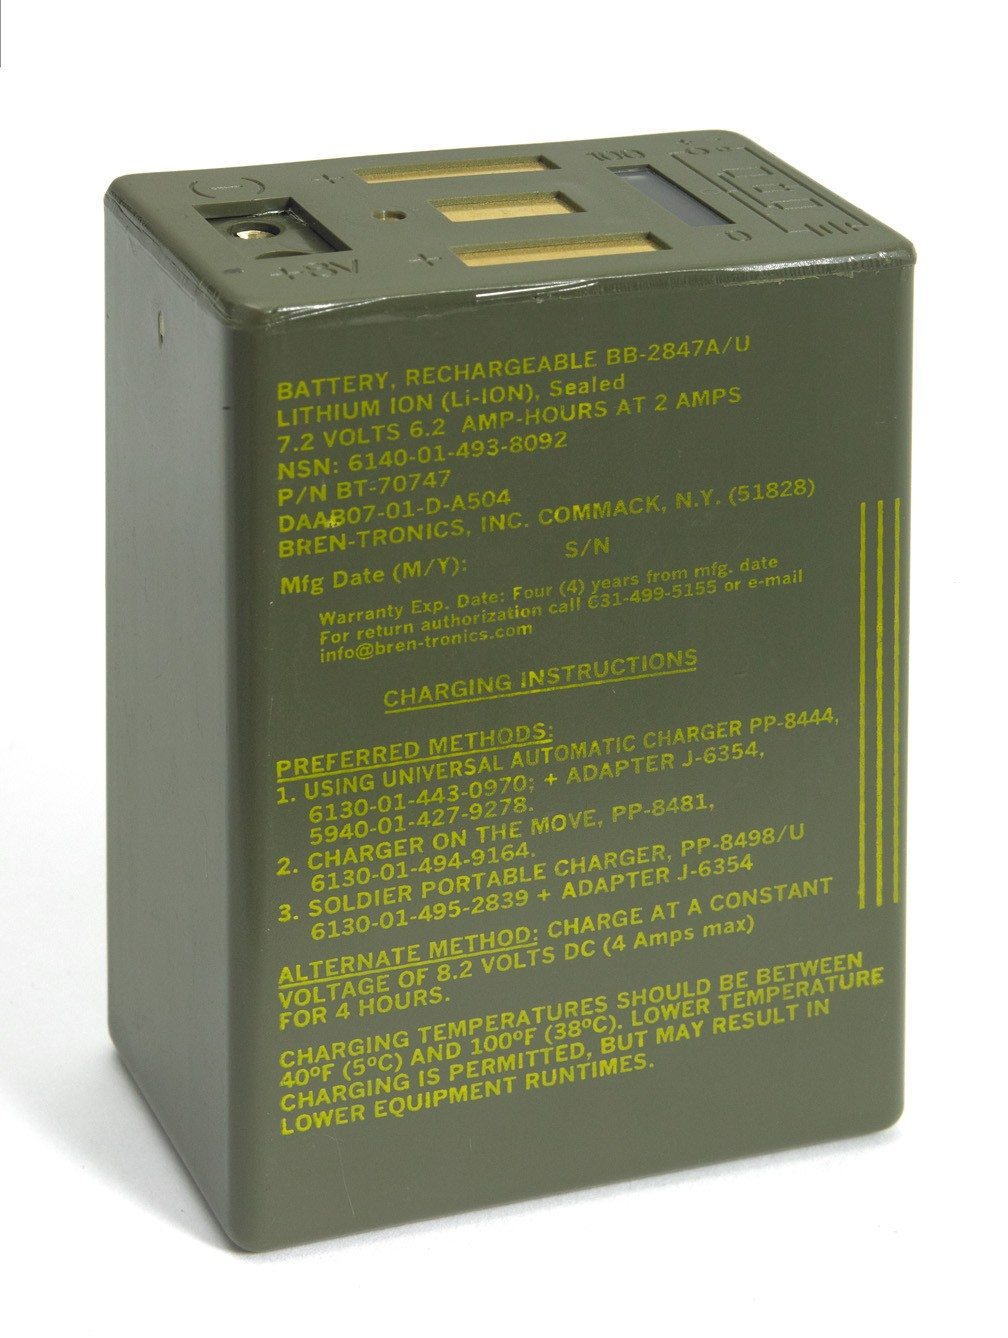 Battery: BT-70747 (BB-2847A/U)